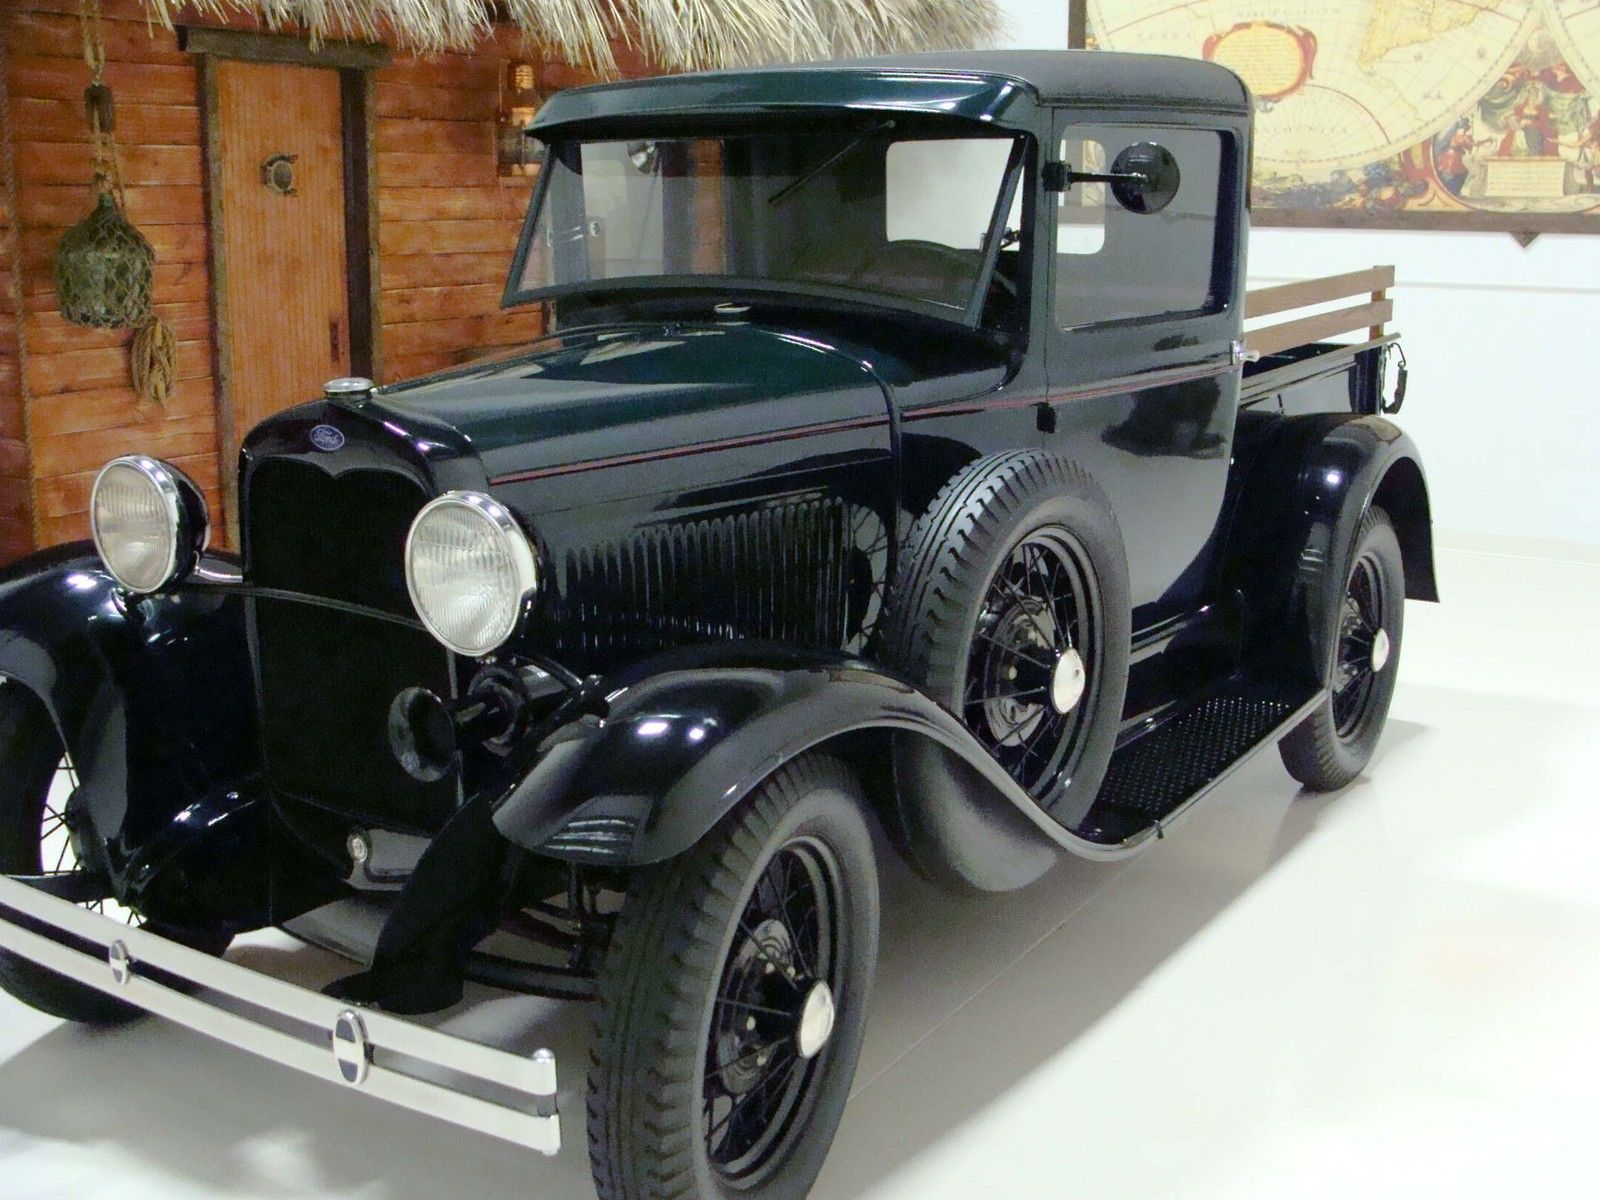 1930 Ford Model A Pickup Truck in Green & Black. Matching Numbers Engine  And Title Identification Number. 4 Cylinder Manual 3 Speed Transmission.